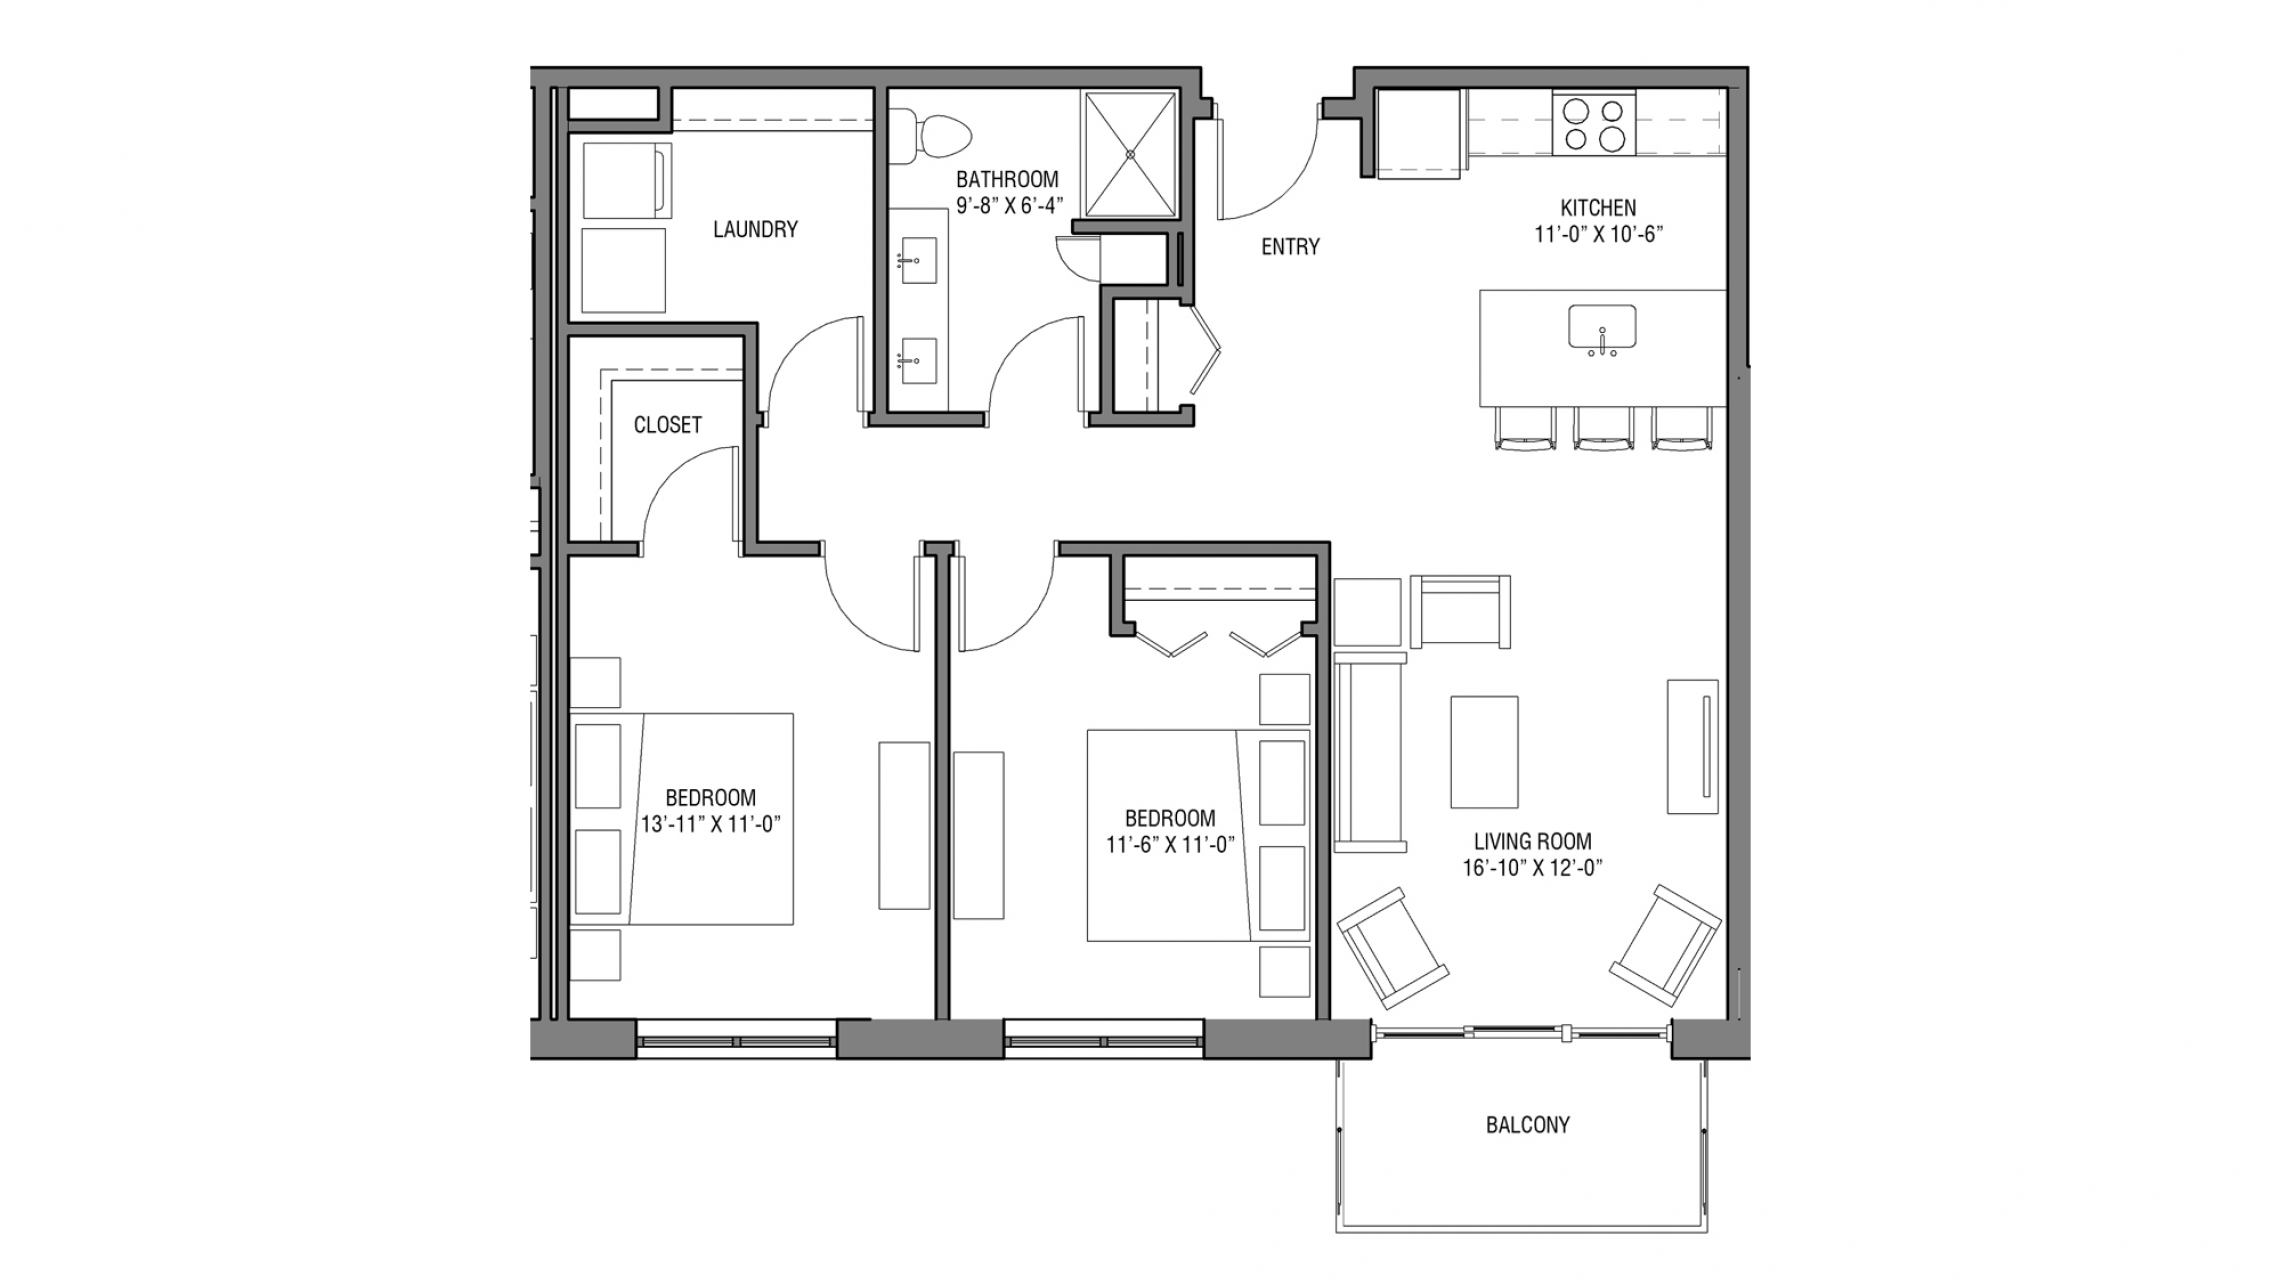 ULI Nine Line 224 - Two Bedroom, One Bathroom